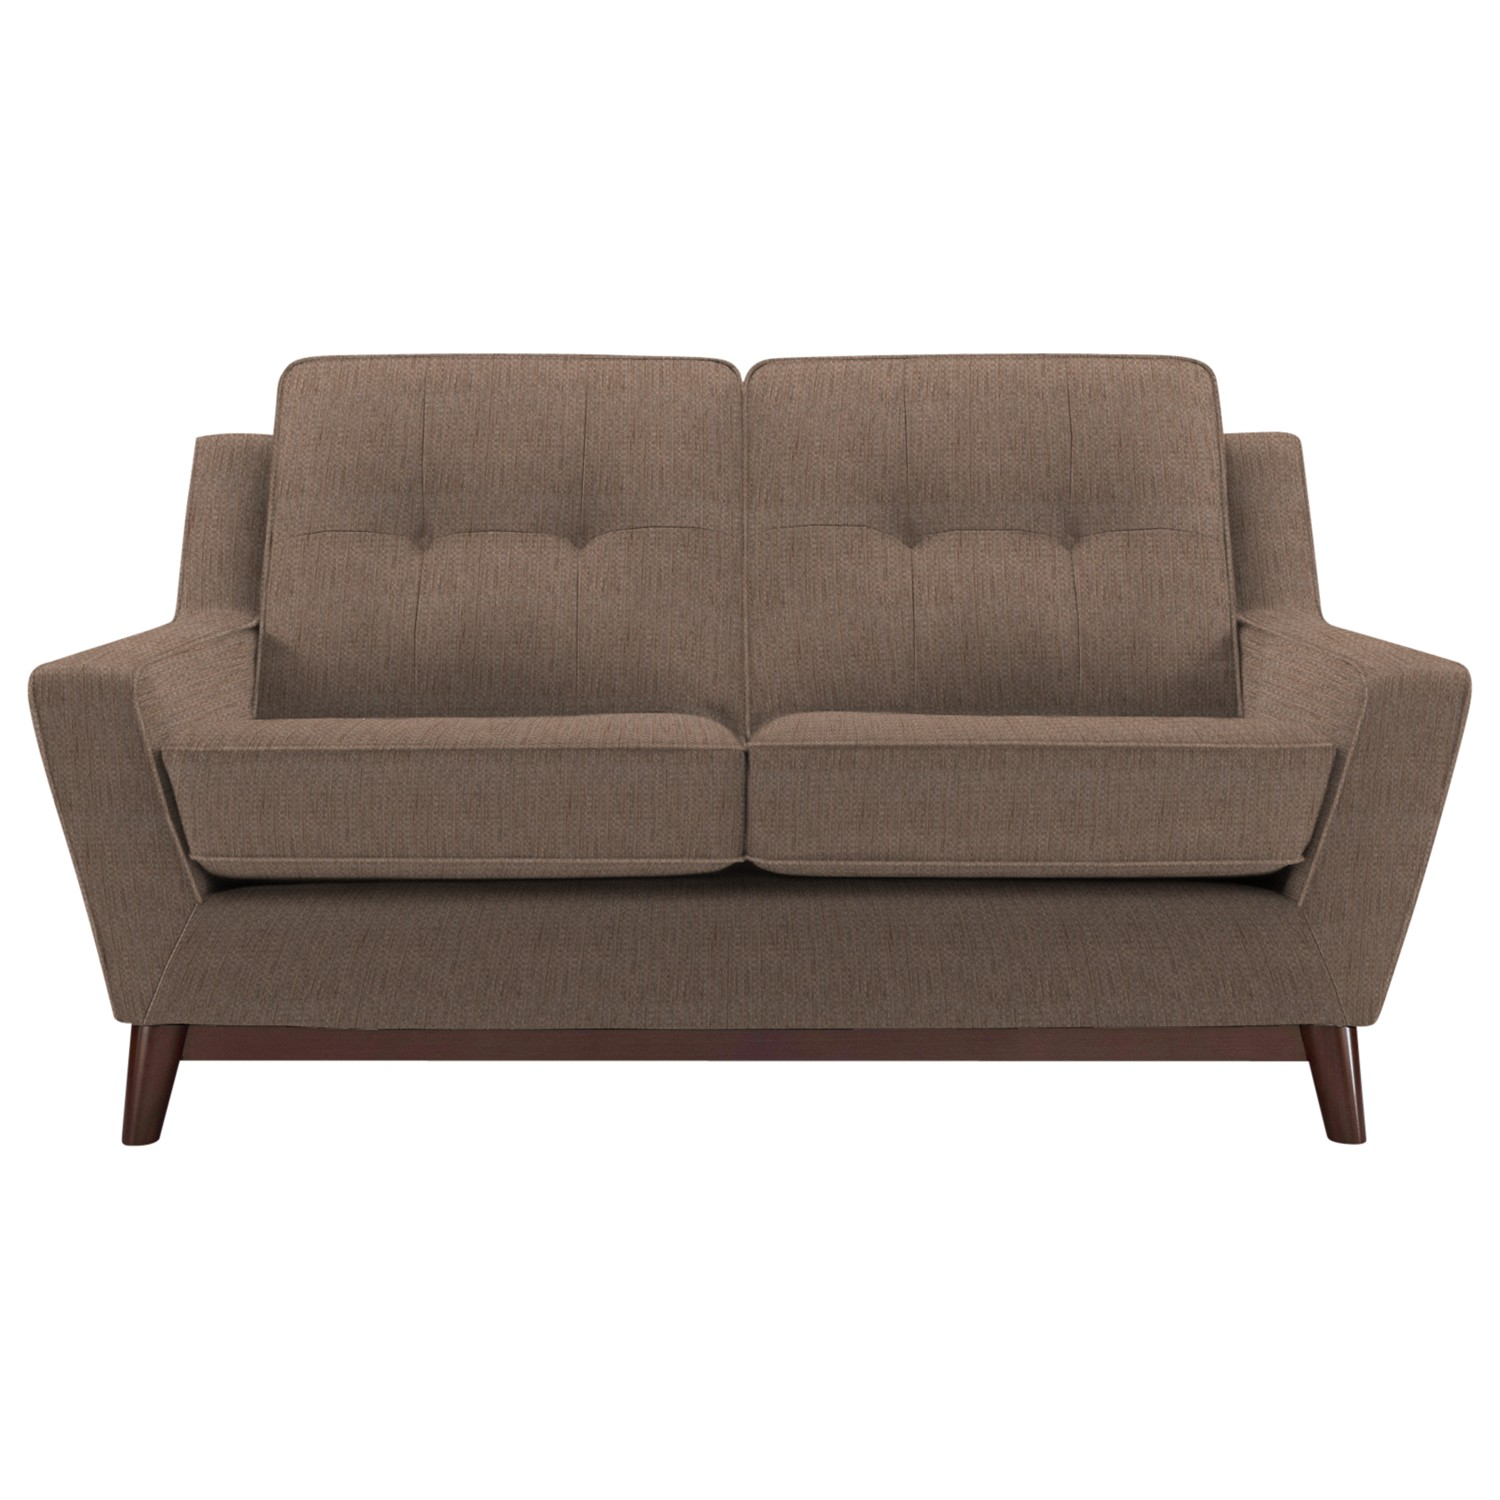 sofa online cheapest pro seda hazienda where to place cute small couches for sale couch and